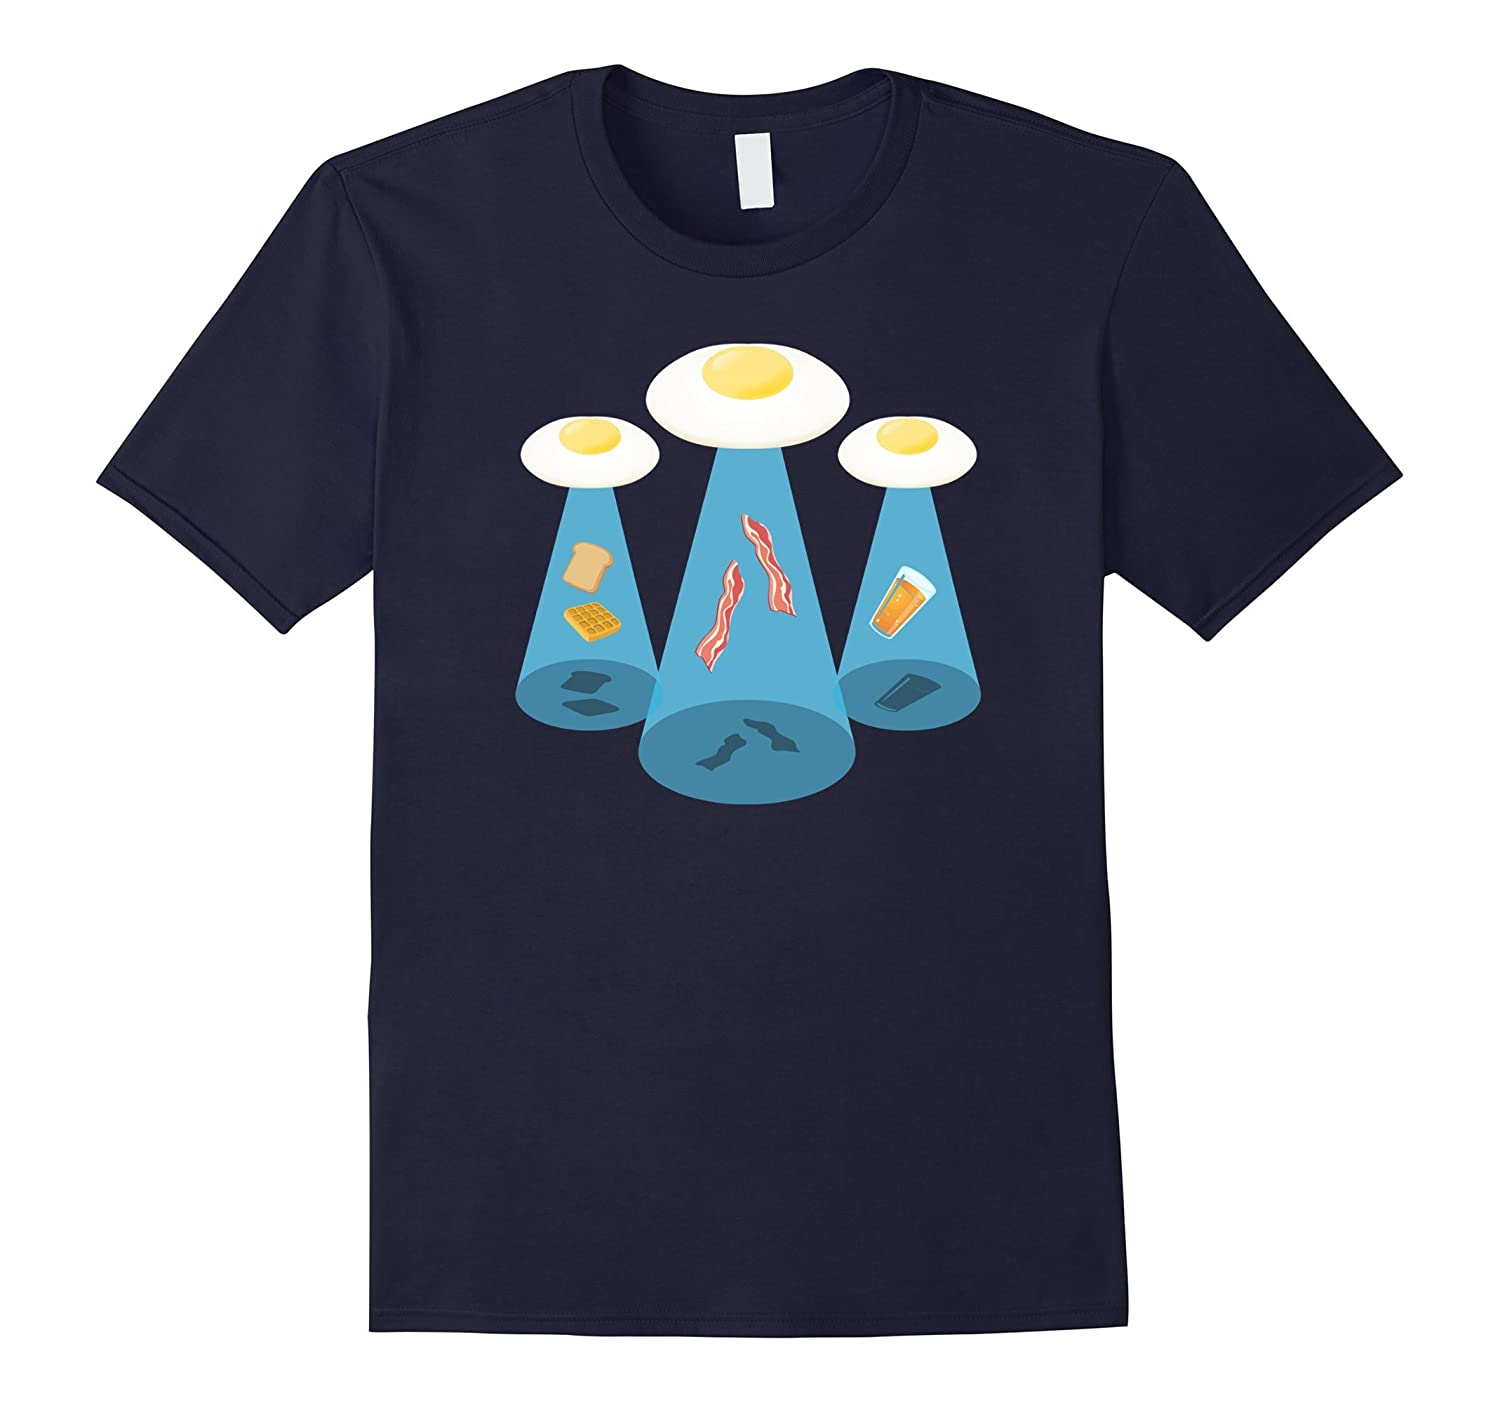 Alien Breakfast T-Shirt, Space UFO Breakfast Tee Apparel-T-Shirt